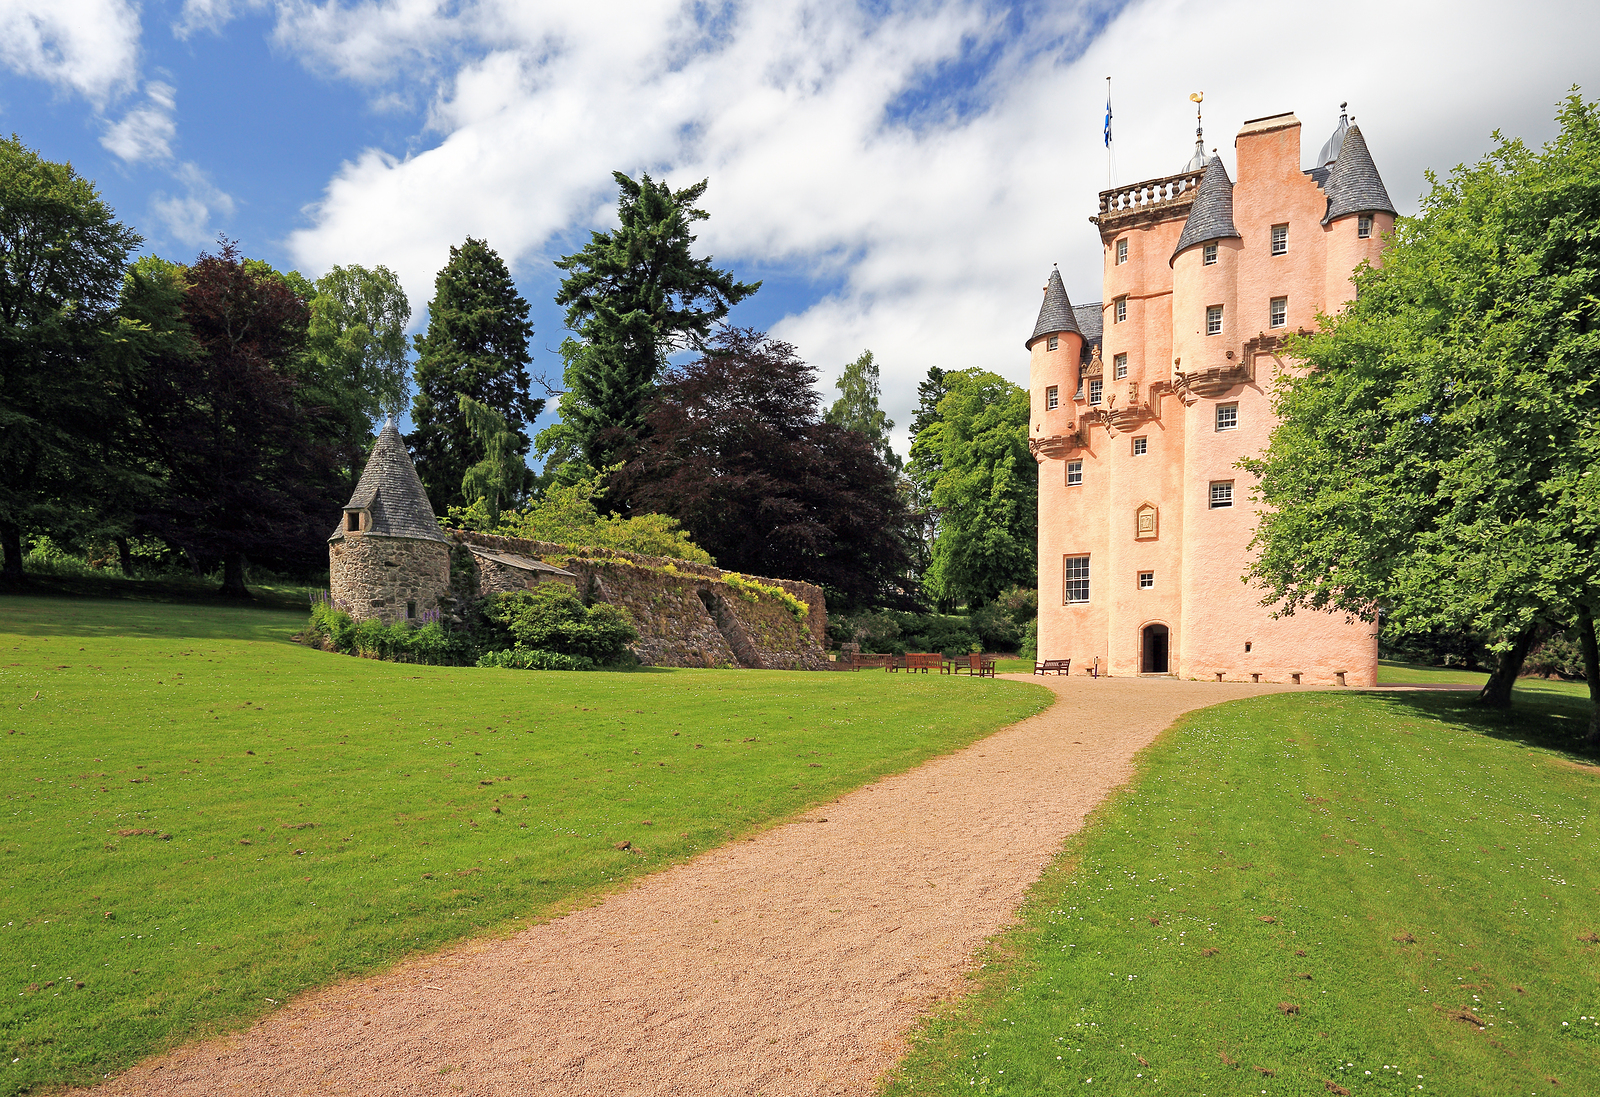 Visit Craigievar castle on your Luxury Scottish Tour, nestled in the Cairngorms